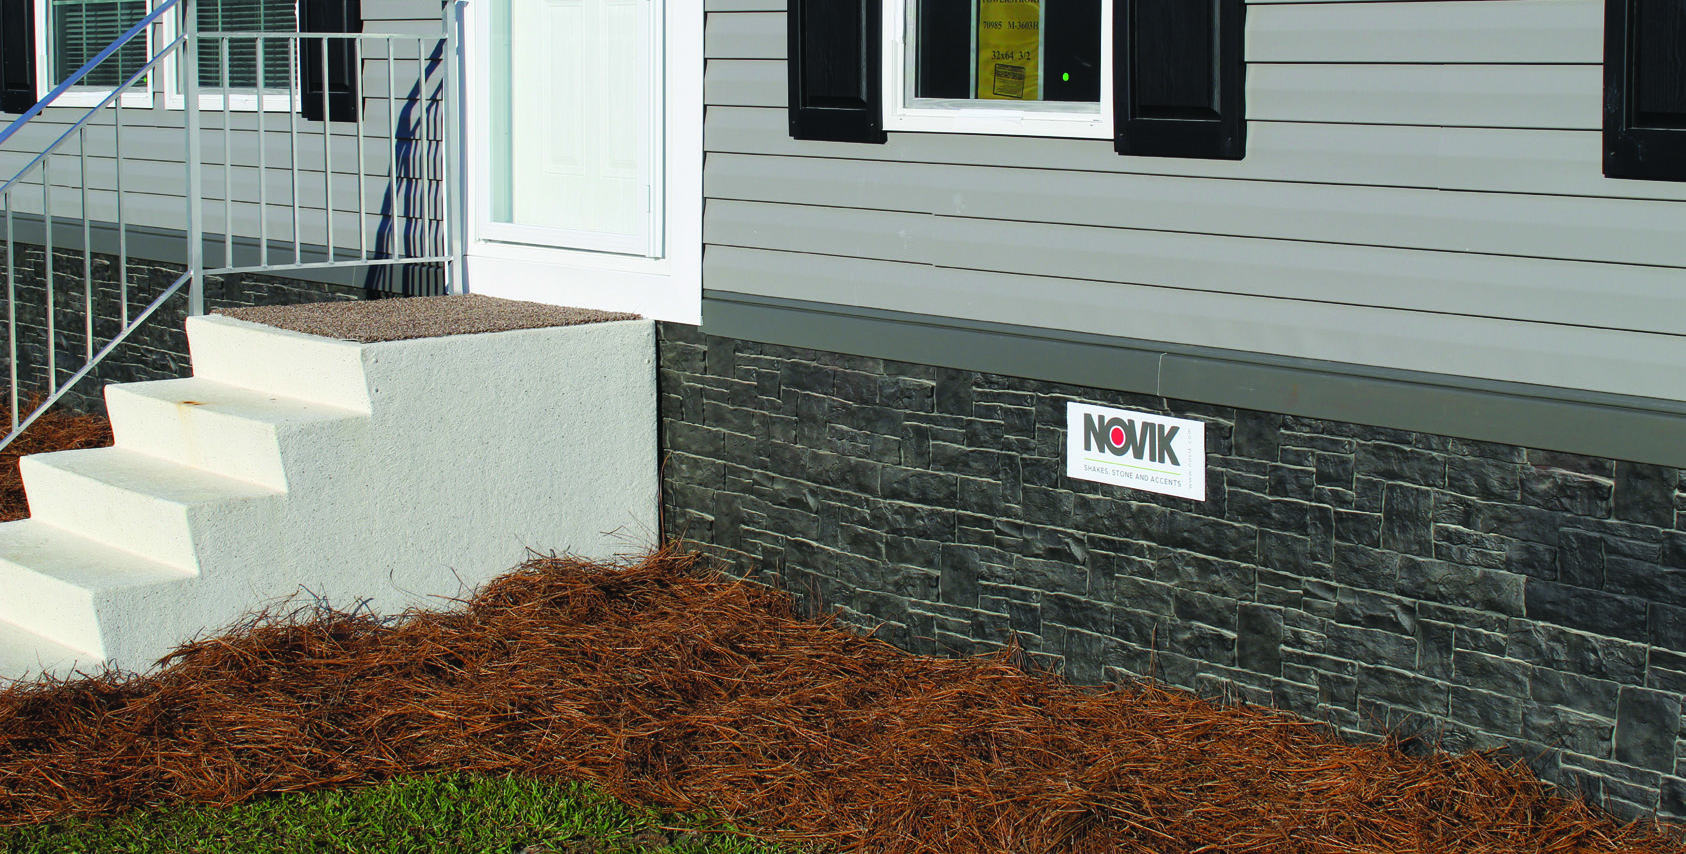 Novik-NovikStone-Skirting Flyer 8x11_2019-2-CROPPED